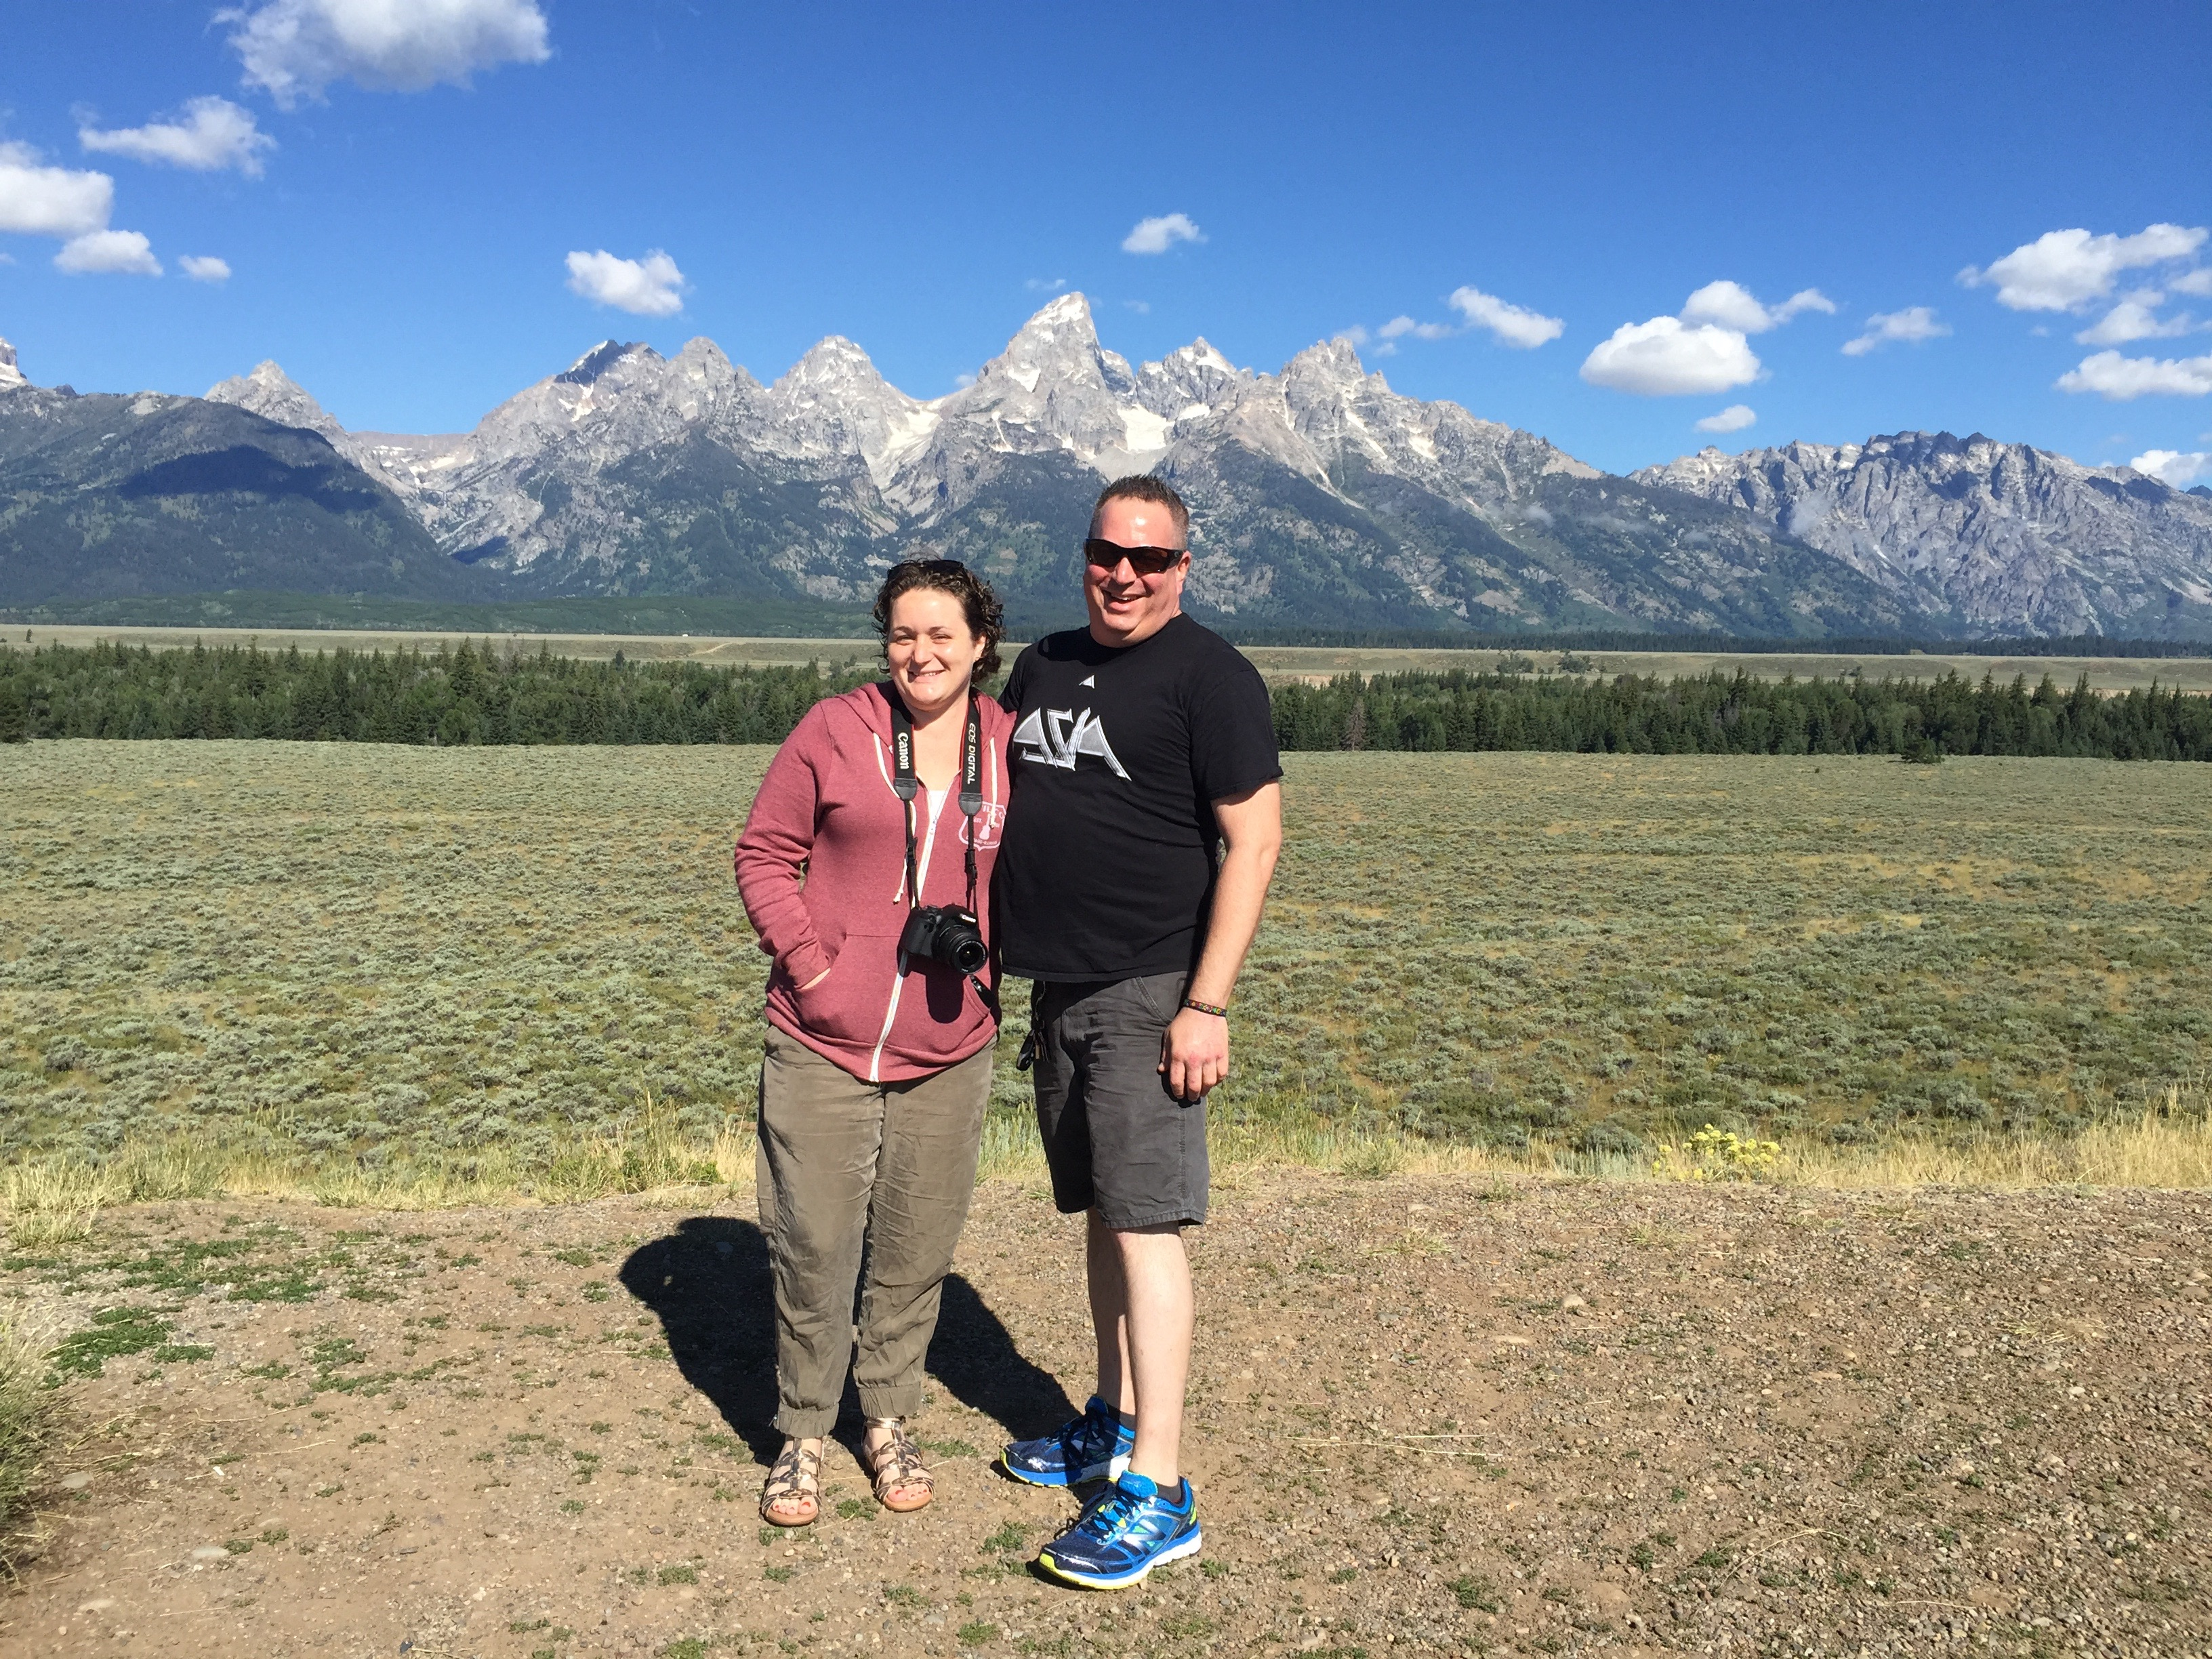 MakingBetter at the Grand Tetons